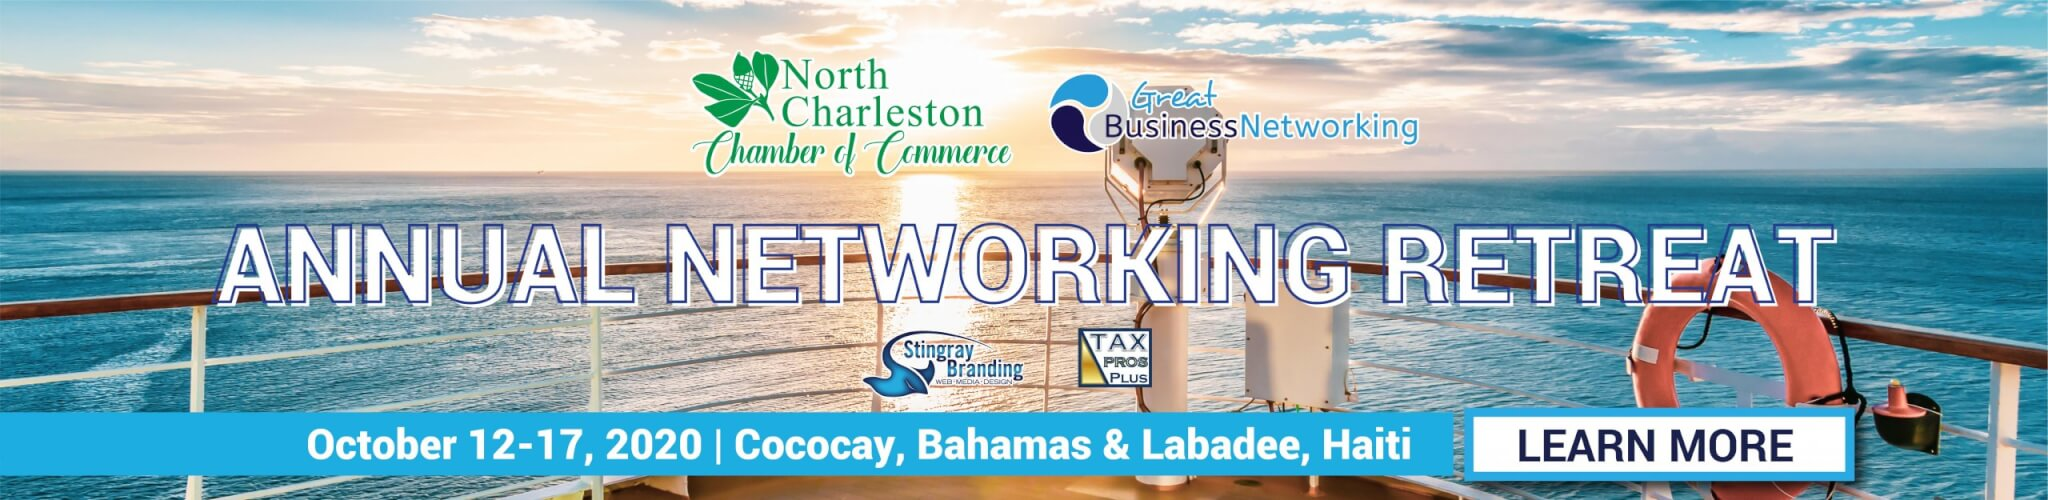 gbn networking retreat, chamber cruise, chamber networking retreat